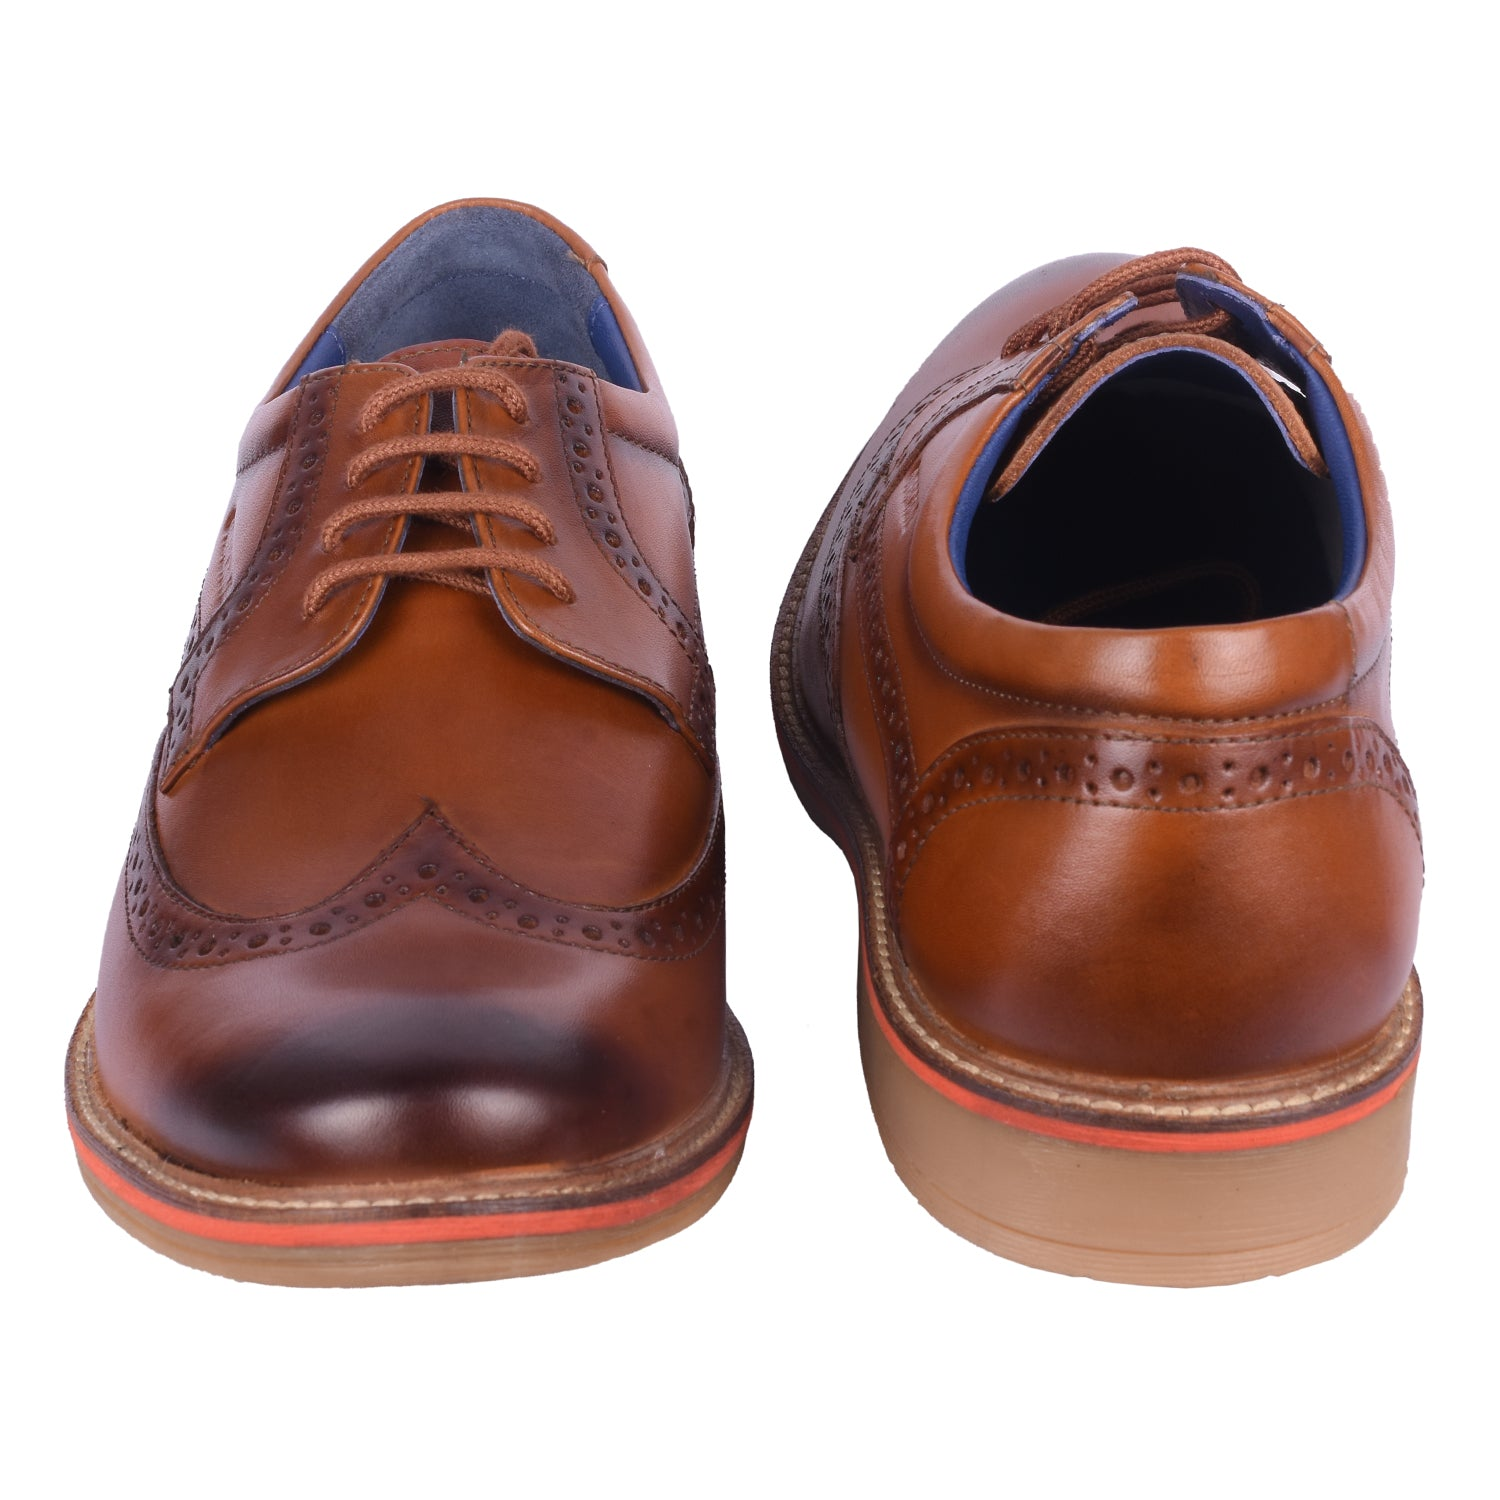 Overdrive Tan Brogue Shoes